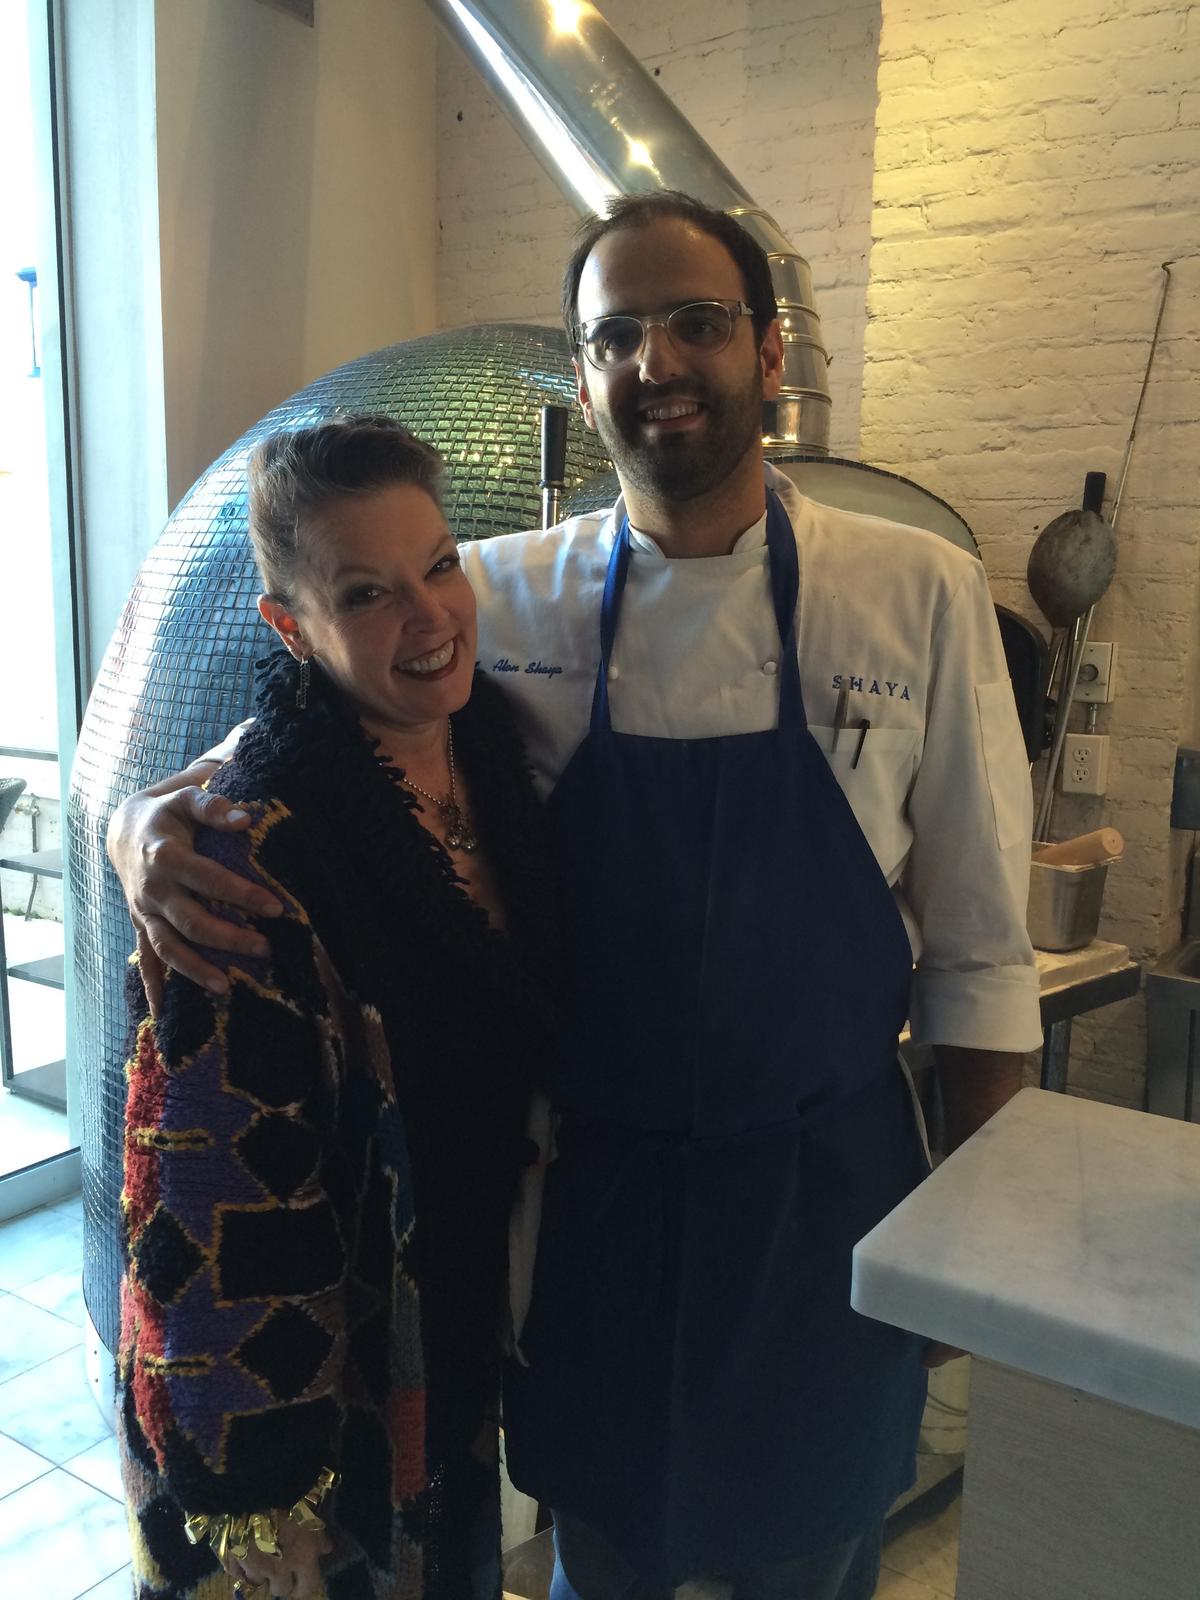 Host Poppy Tooker with Alon Shaya   Credit Reggie Morris / Louisiana Eats